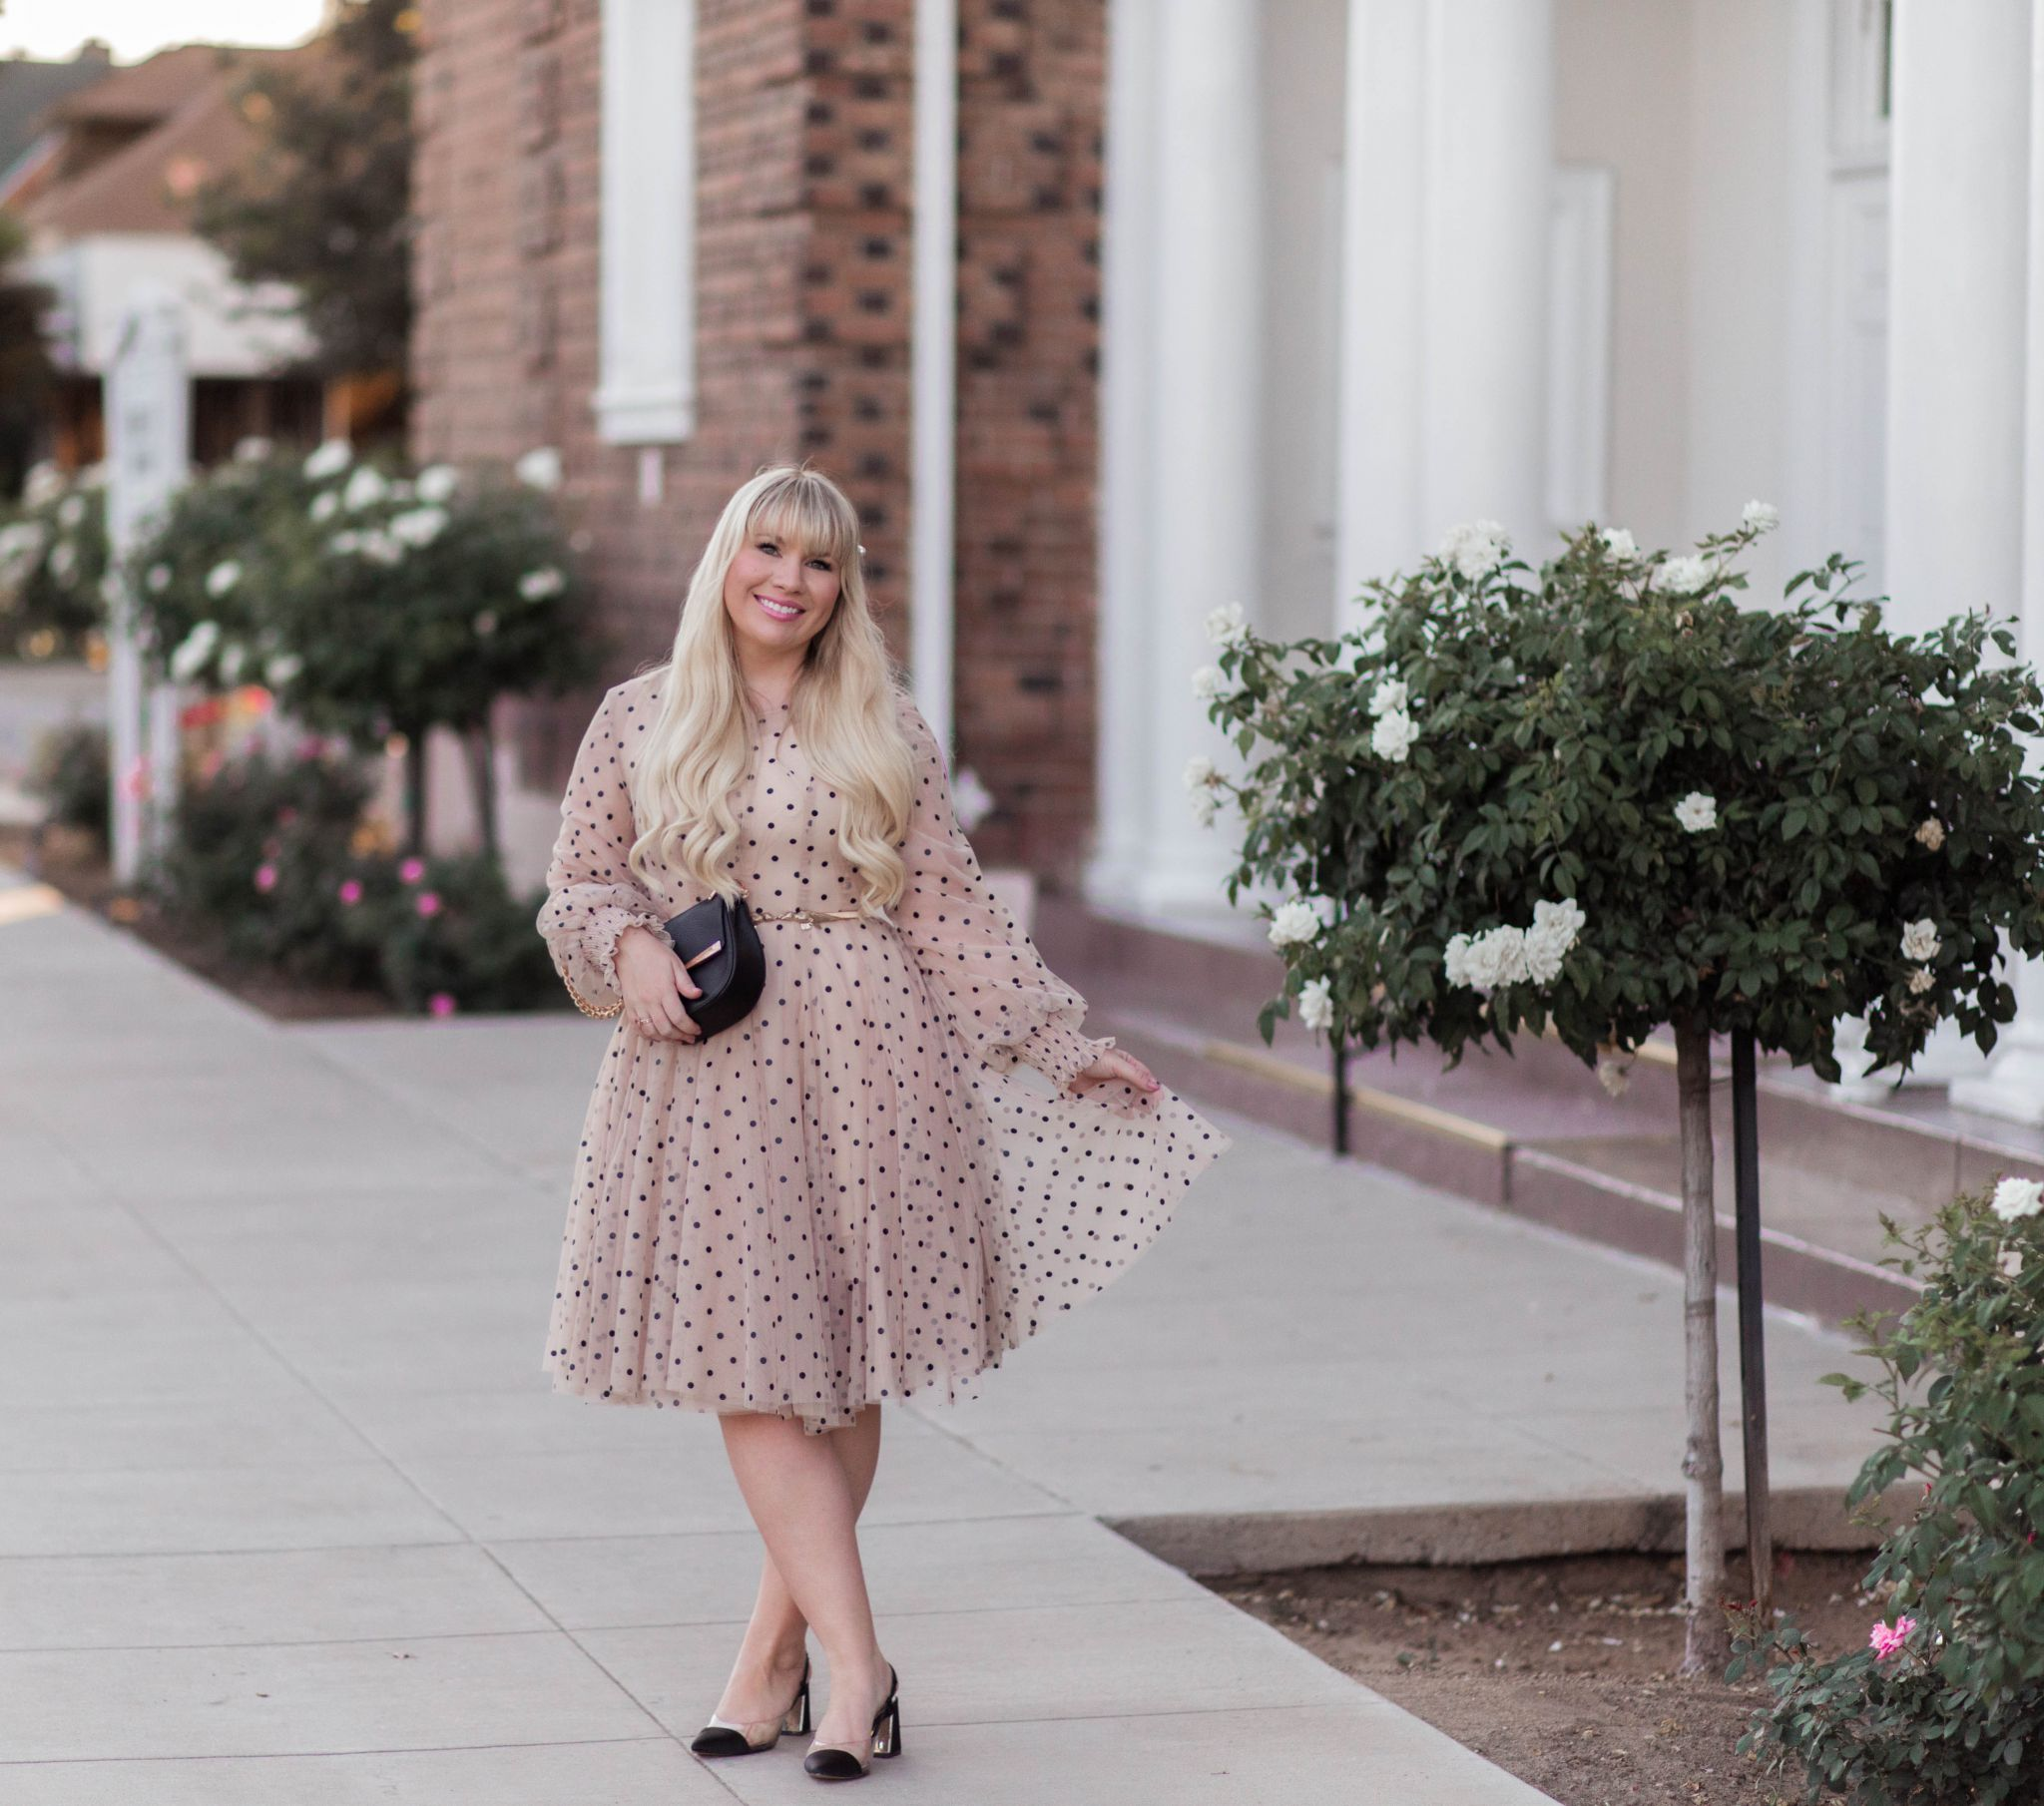 The Prettiest Polka Dot Tulle Dress